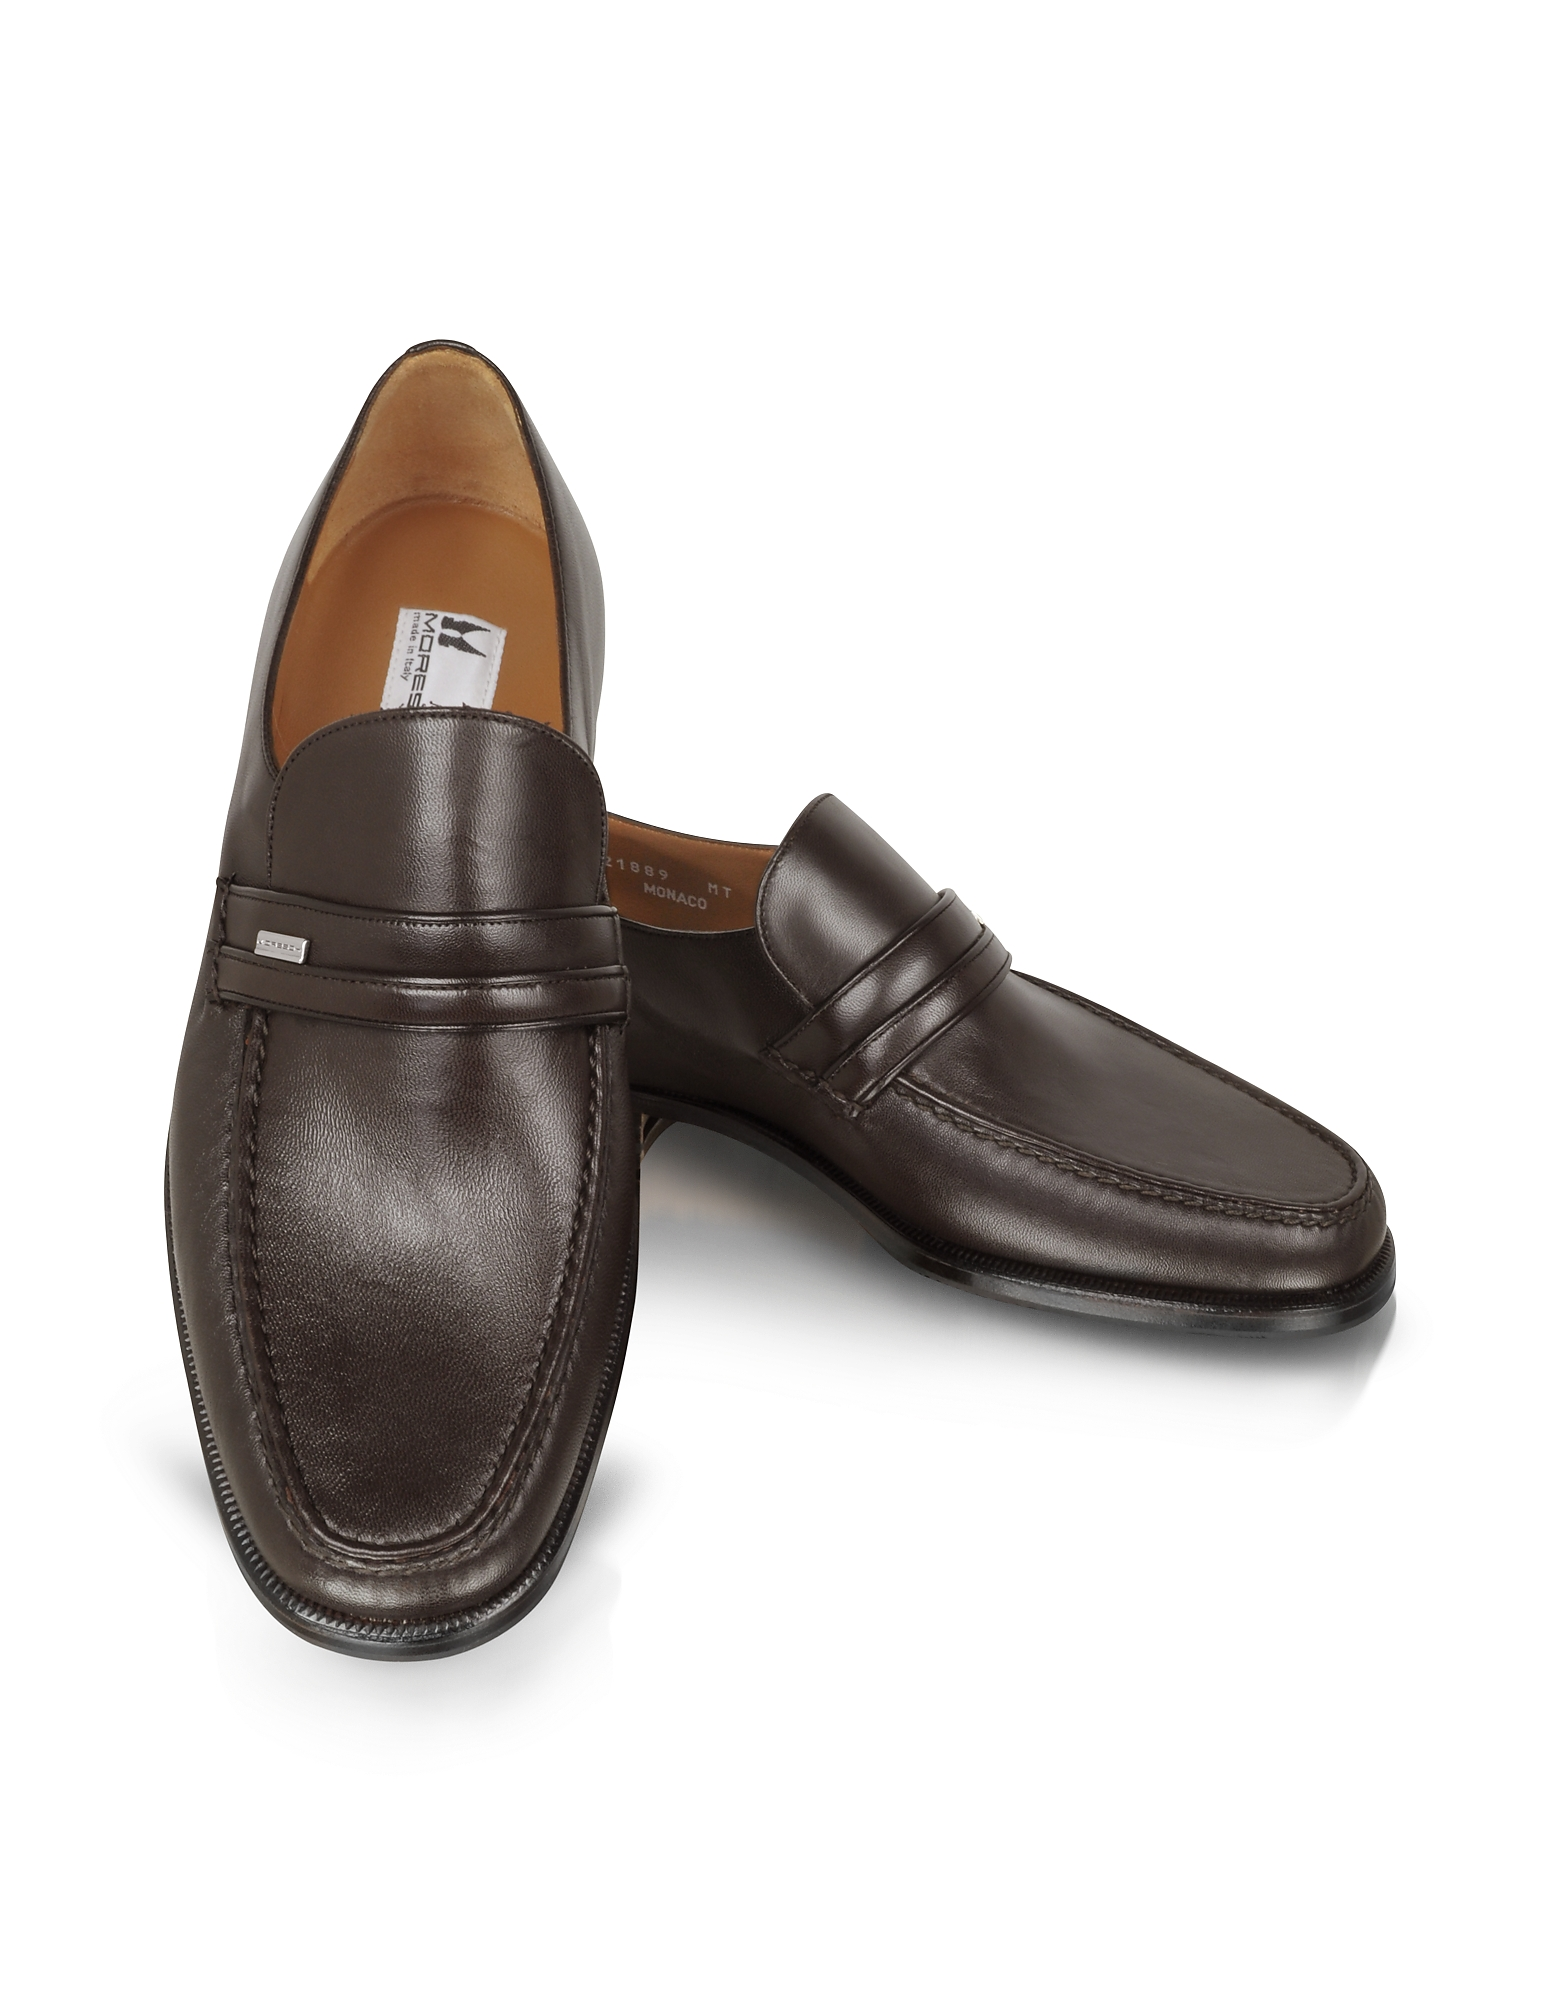 Moreschi Shoes, Monaco Brown Leather Loafers